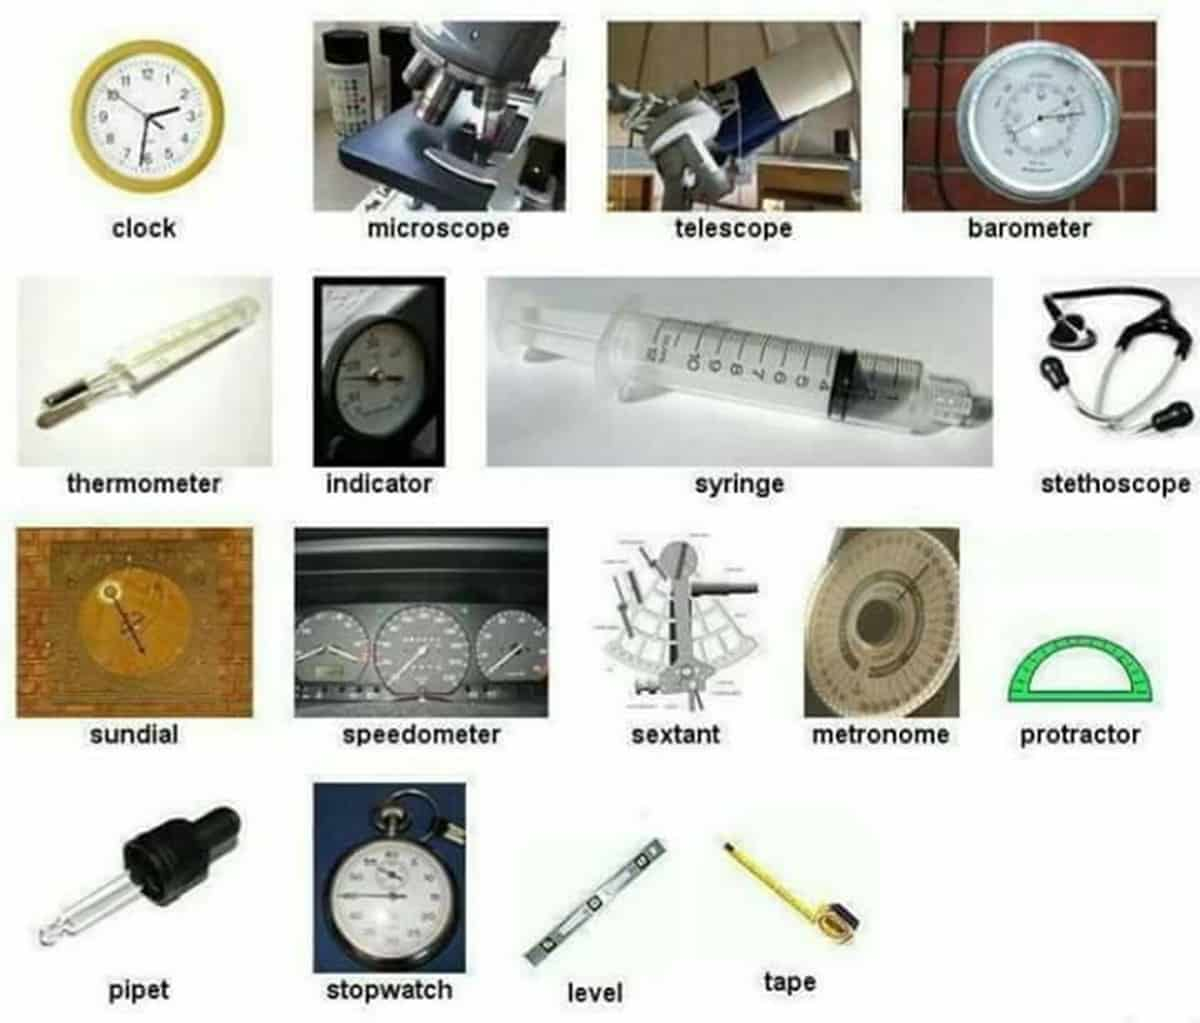 Tools, Equipment, Devices and Home Appliances Vocabulary: 300+ Items Illustrated 22